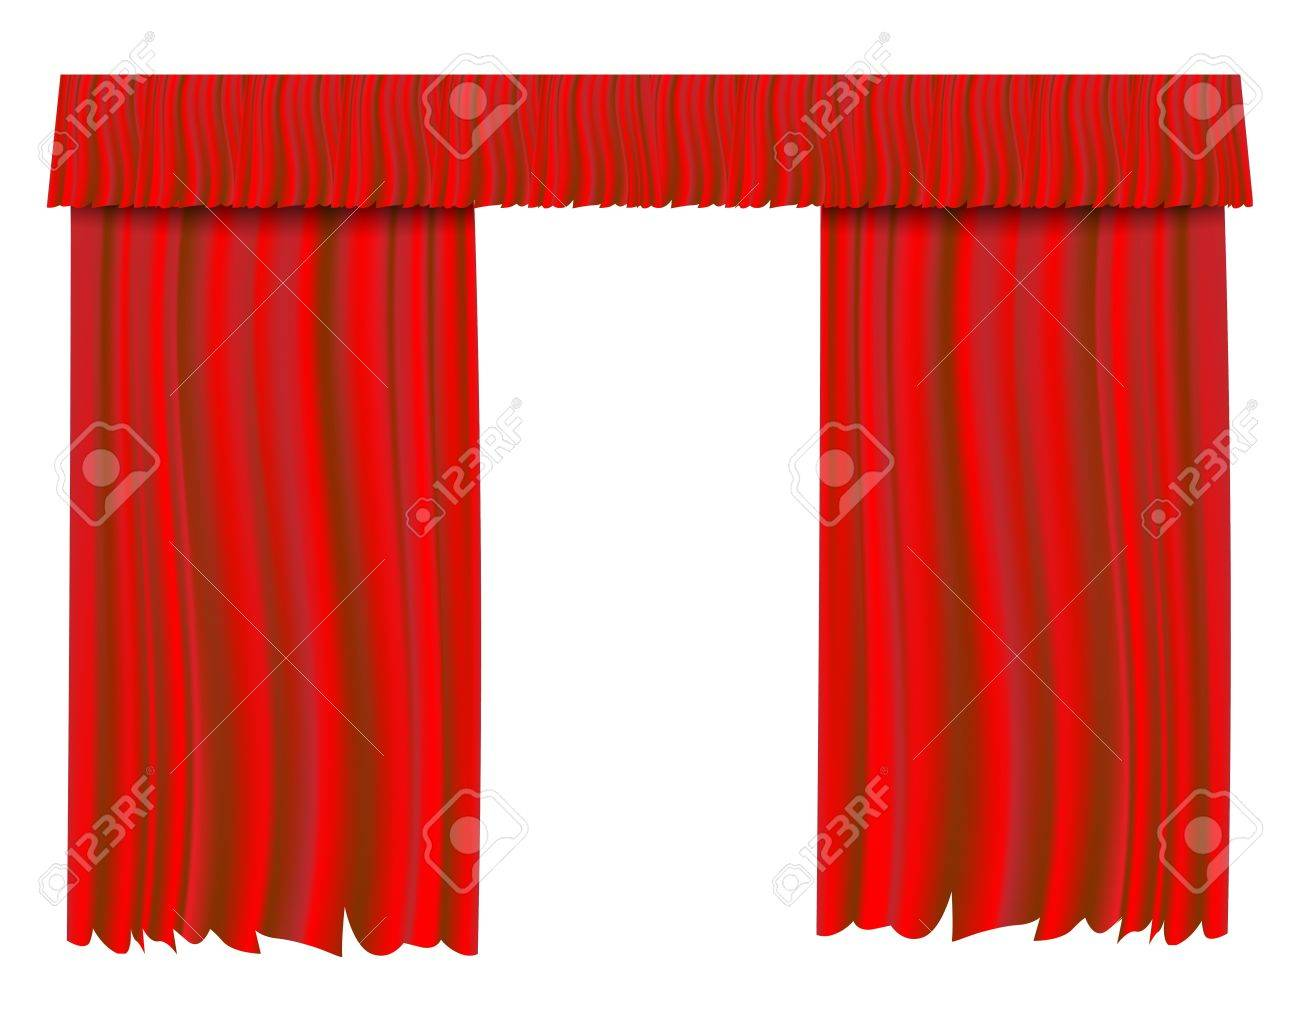 Red theater curtain  illustration background. Stock Photo - 17445202